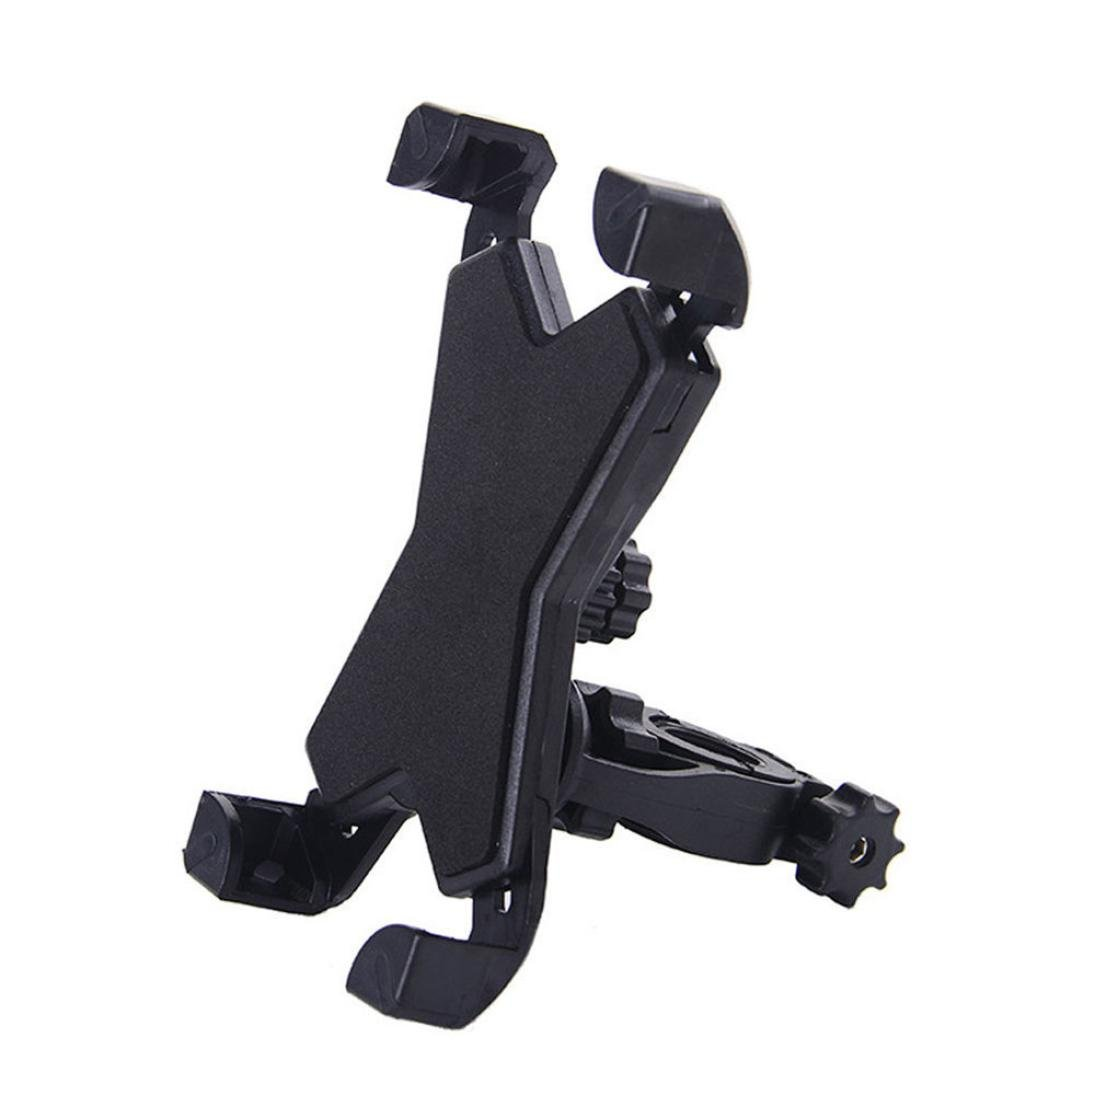 Icocol Bike phone mount,Universal Motorcycle Bike Handlebar Mount Holder For Cell Phone GPS (Black)